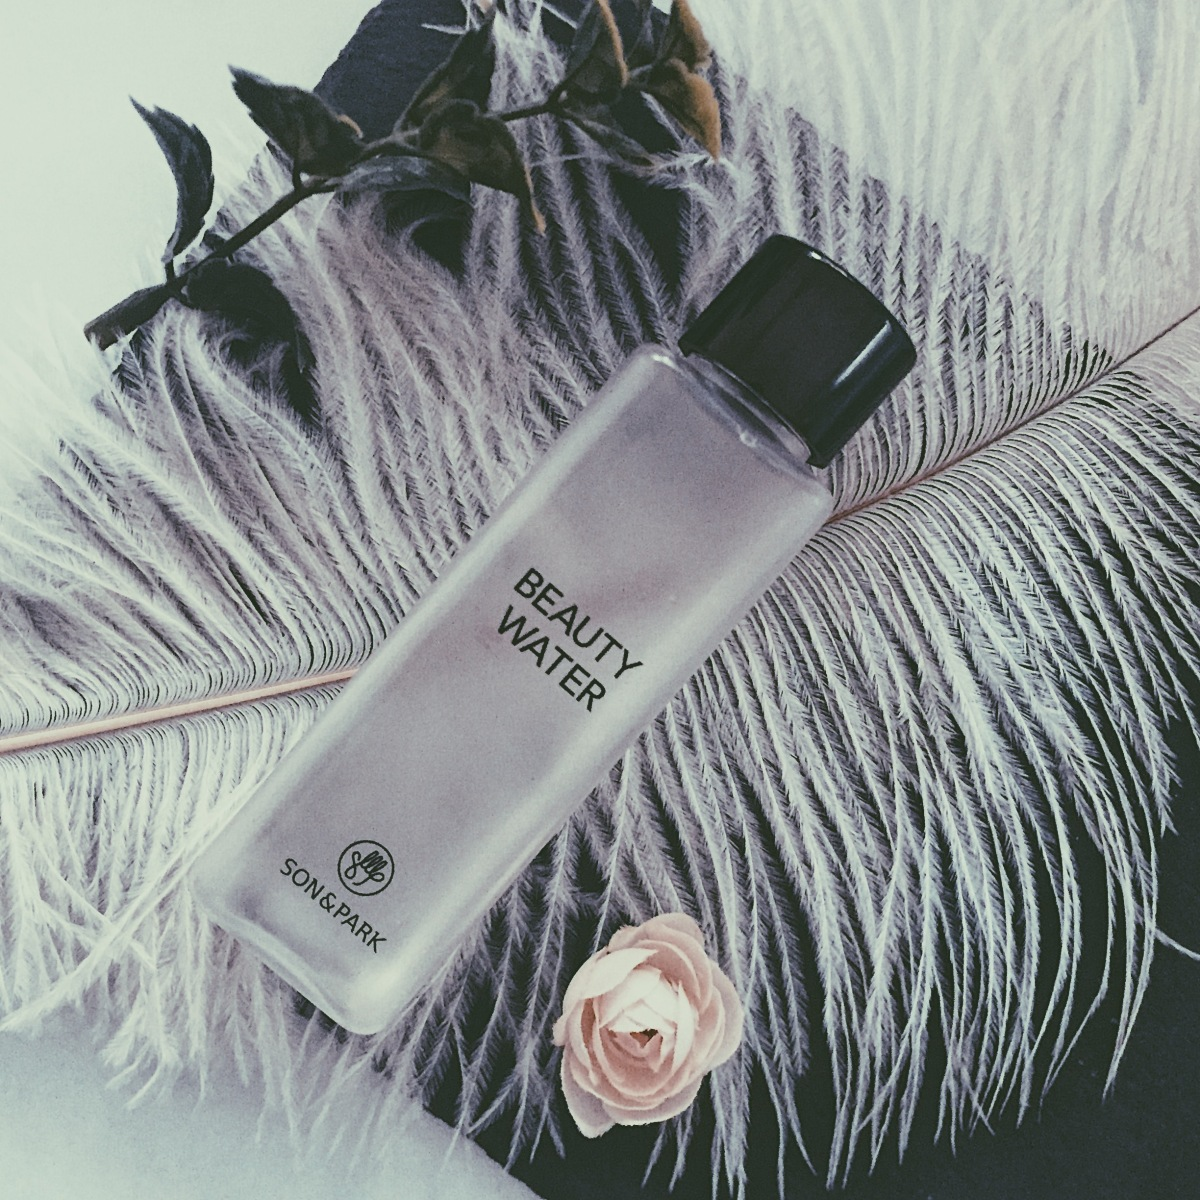 [Review]: Is Son & Park Beauty Water worth the hype? + my favourite ways to use it